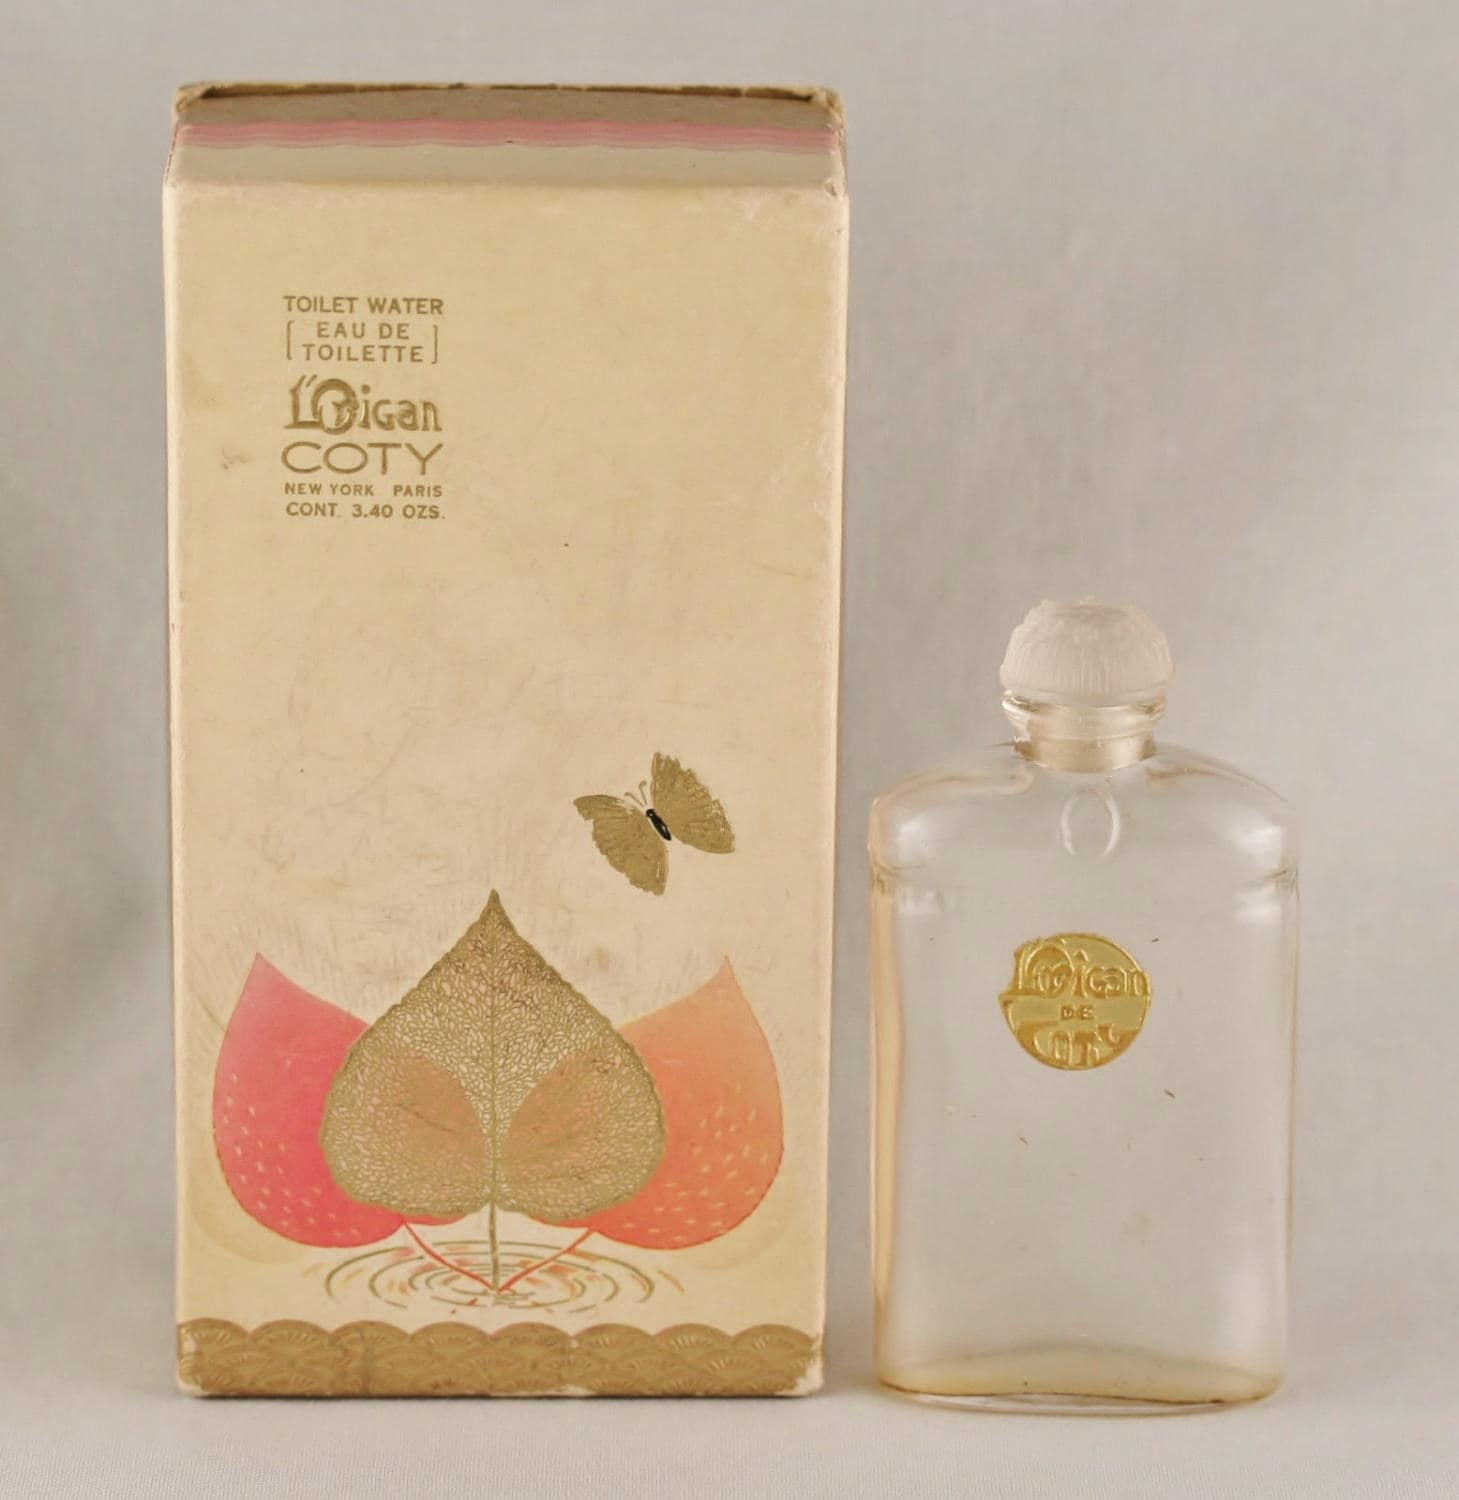 Toilette Deco Original Deco Vintage 1920s Lorigan De Coty French Crystal Eau De Toilette Perfume Bottle Original Box Nouveau Edwardian Downton Gatsby Flapper Era